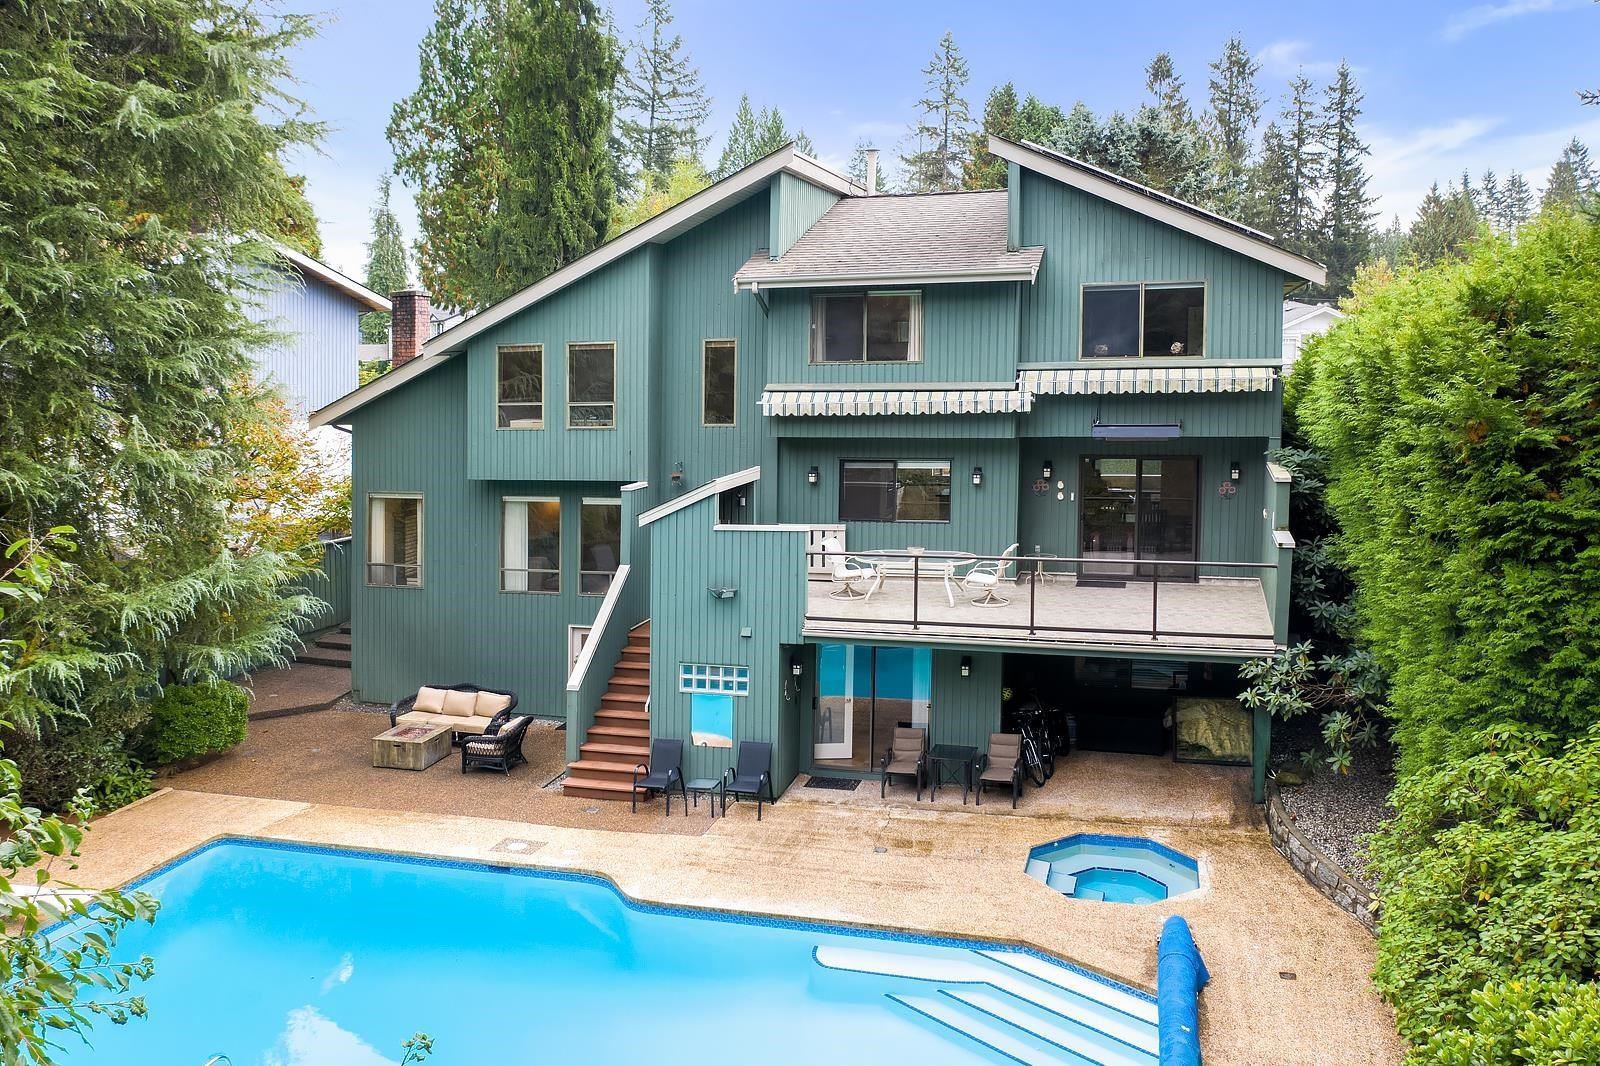 Photo of 4419 PATTERDALE DRIVE, North Vancouver, BC V7R 4L6 (MLS # R2626932)